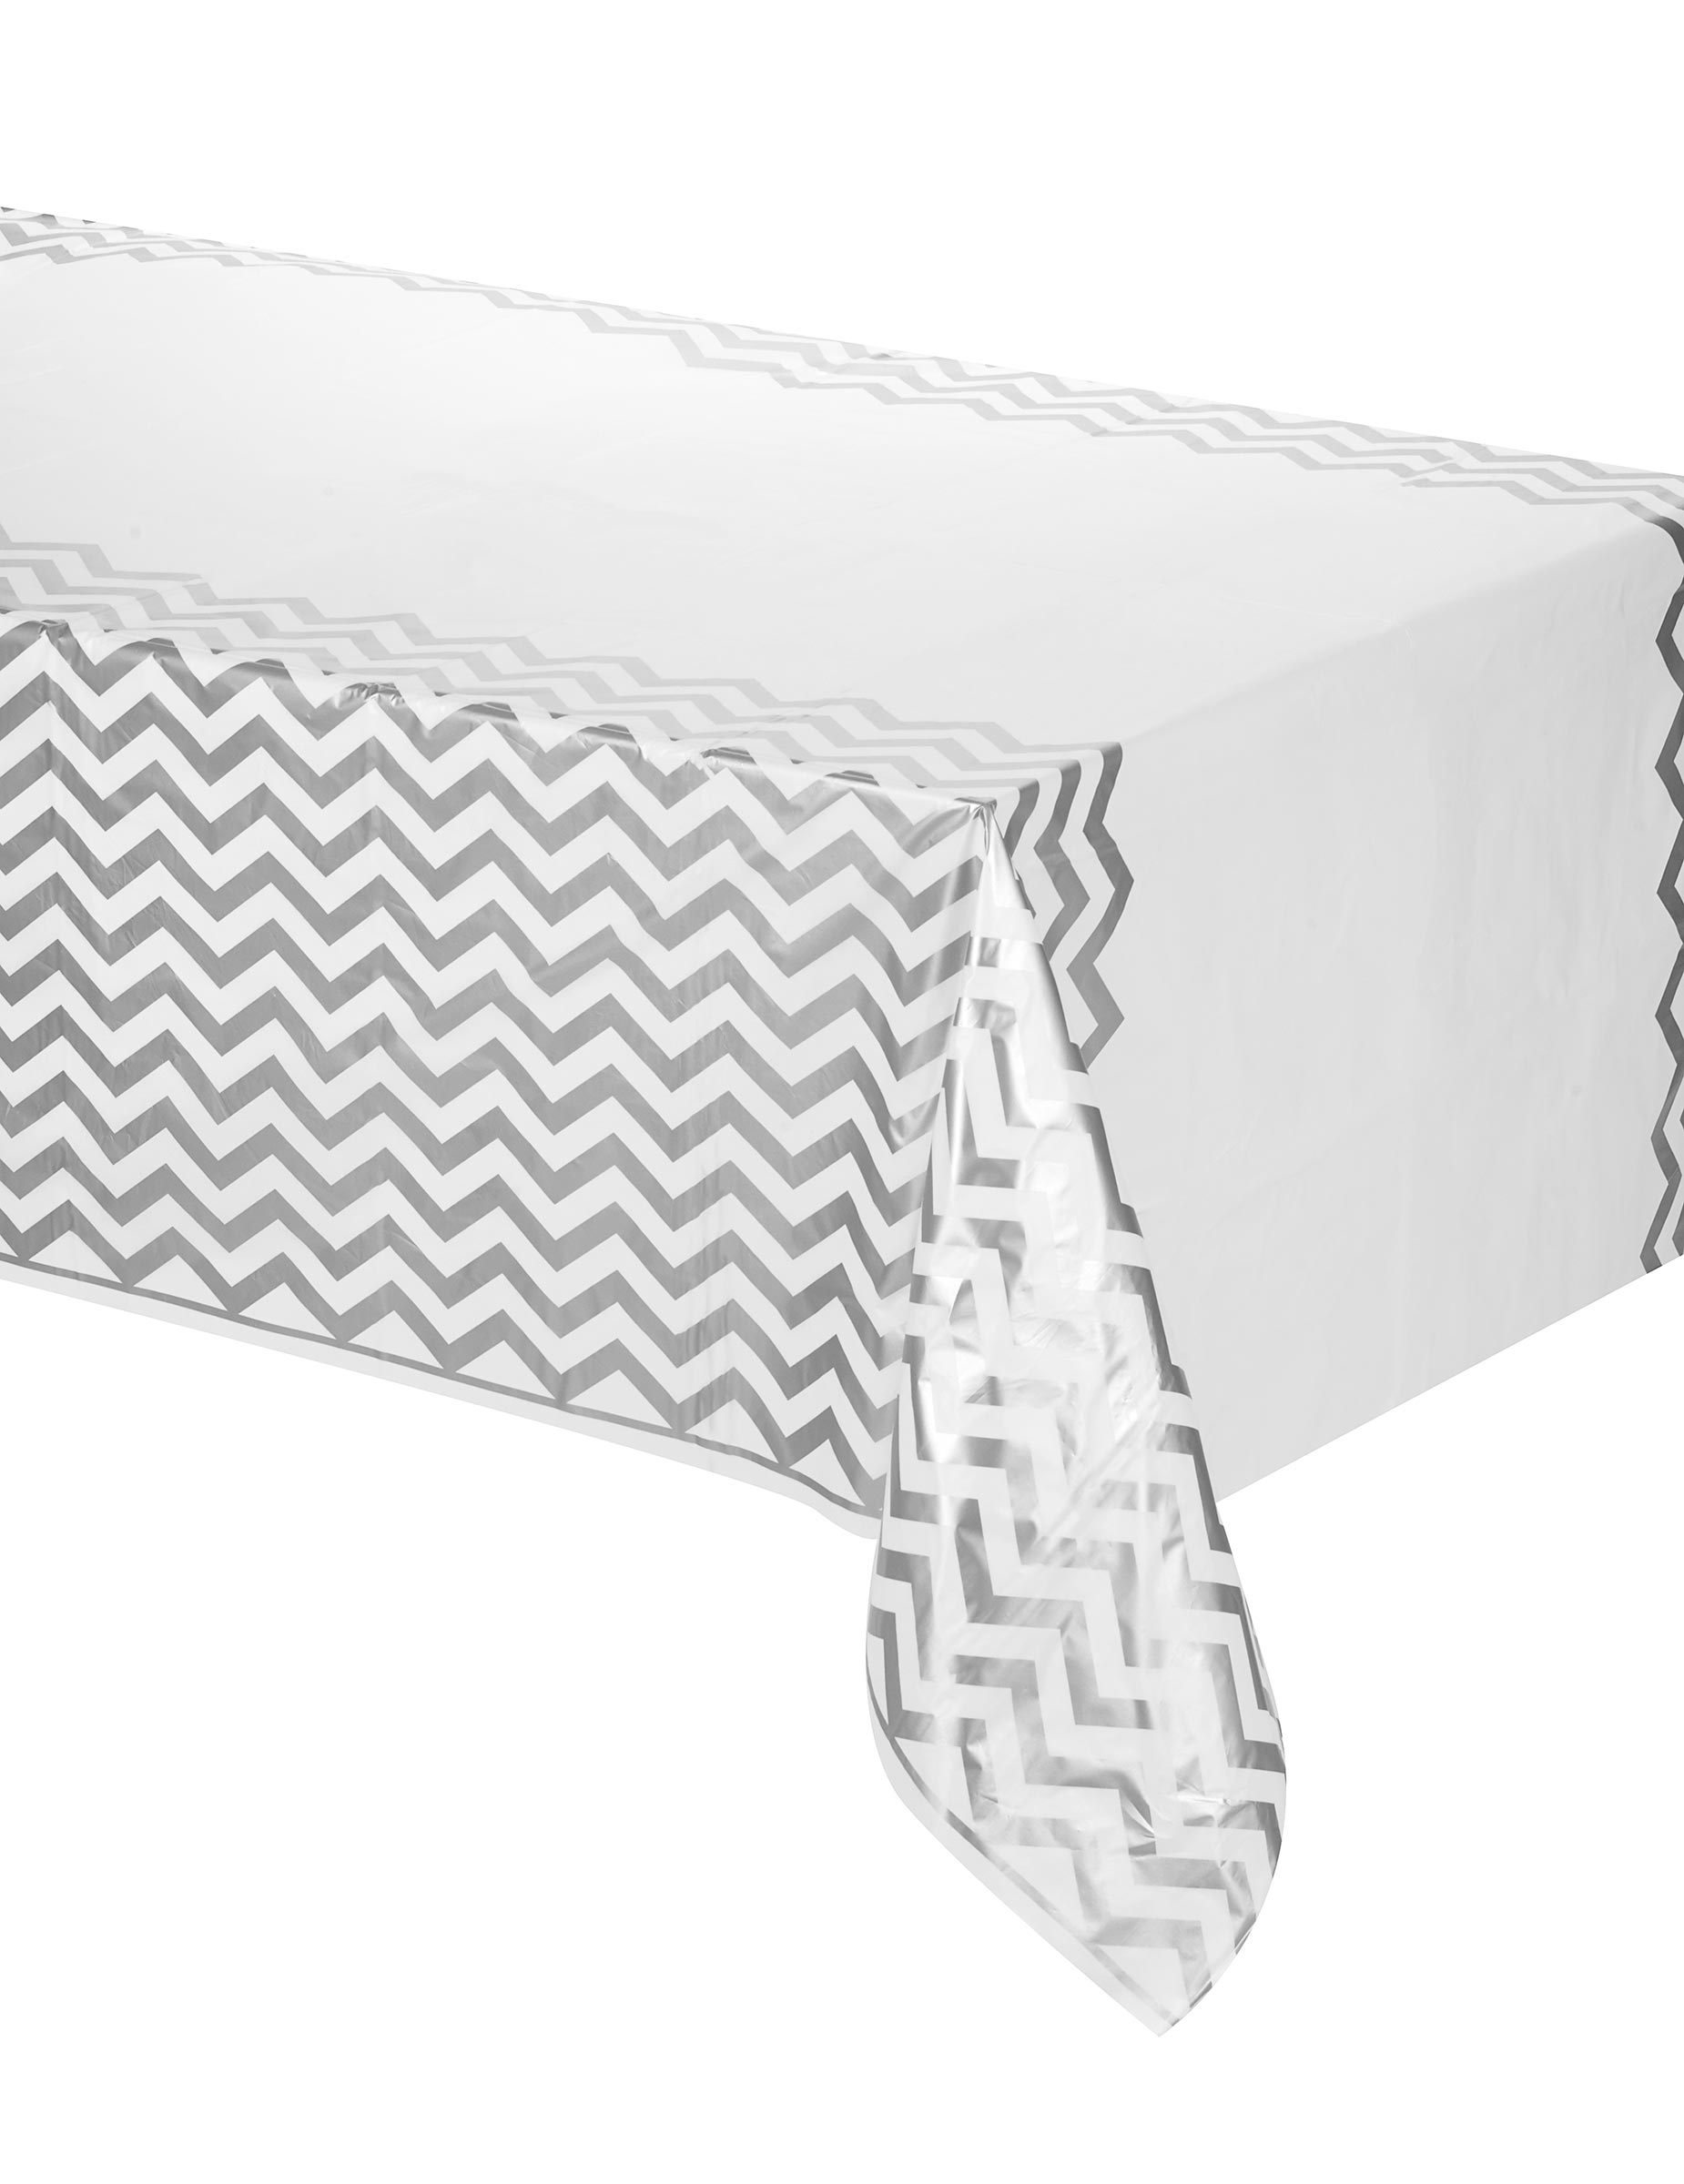 nappe argent e en plastique chevrons 137 x 274 cm d coration anniversaire et f tes th me sur. Black Bedroom Furniture Sets. Home Design Ideas